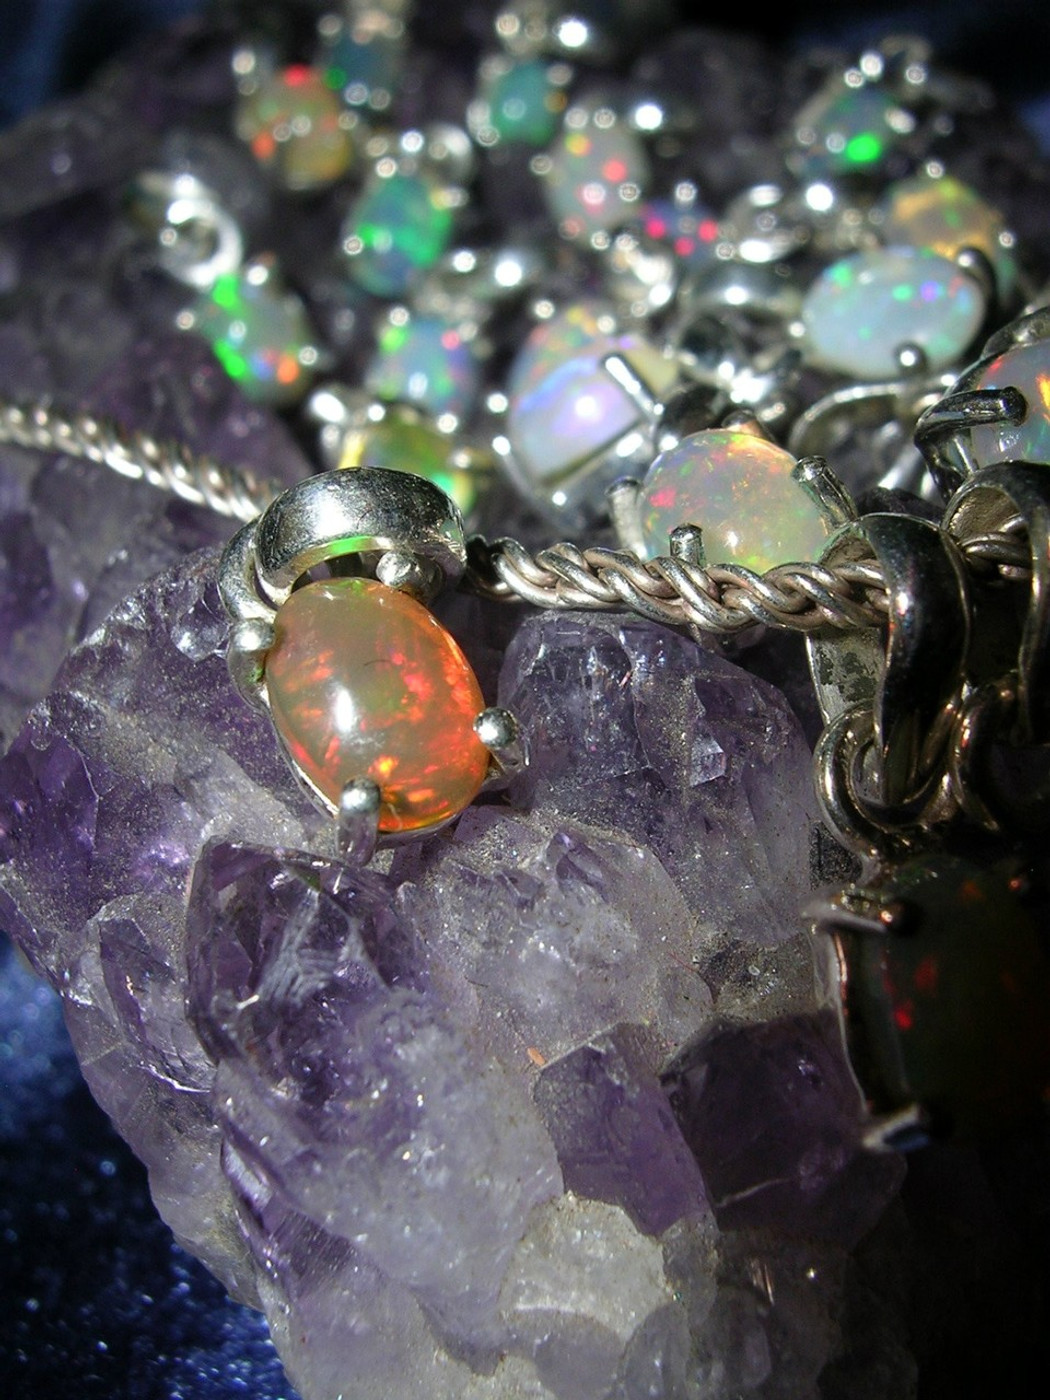 Magick Wishing Pendants Grant Bright Blessings! Love Fame Money MORE